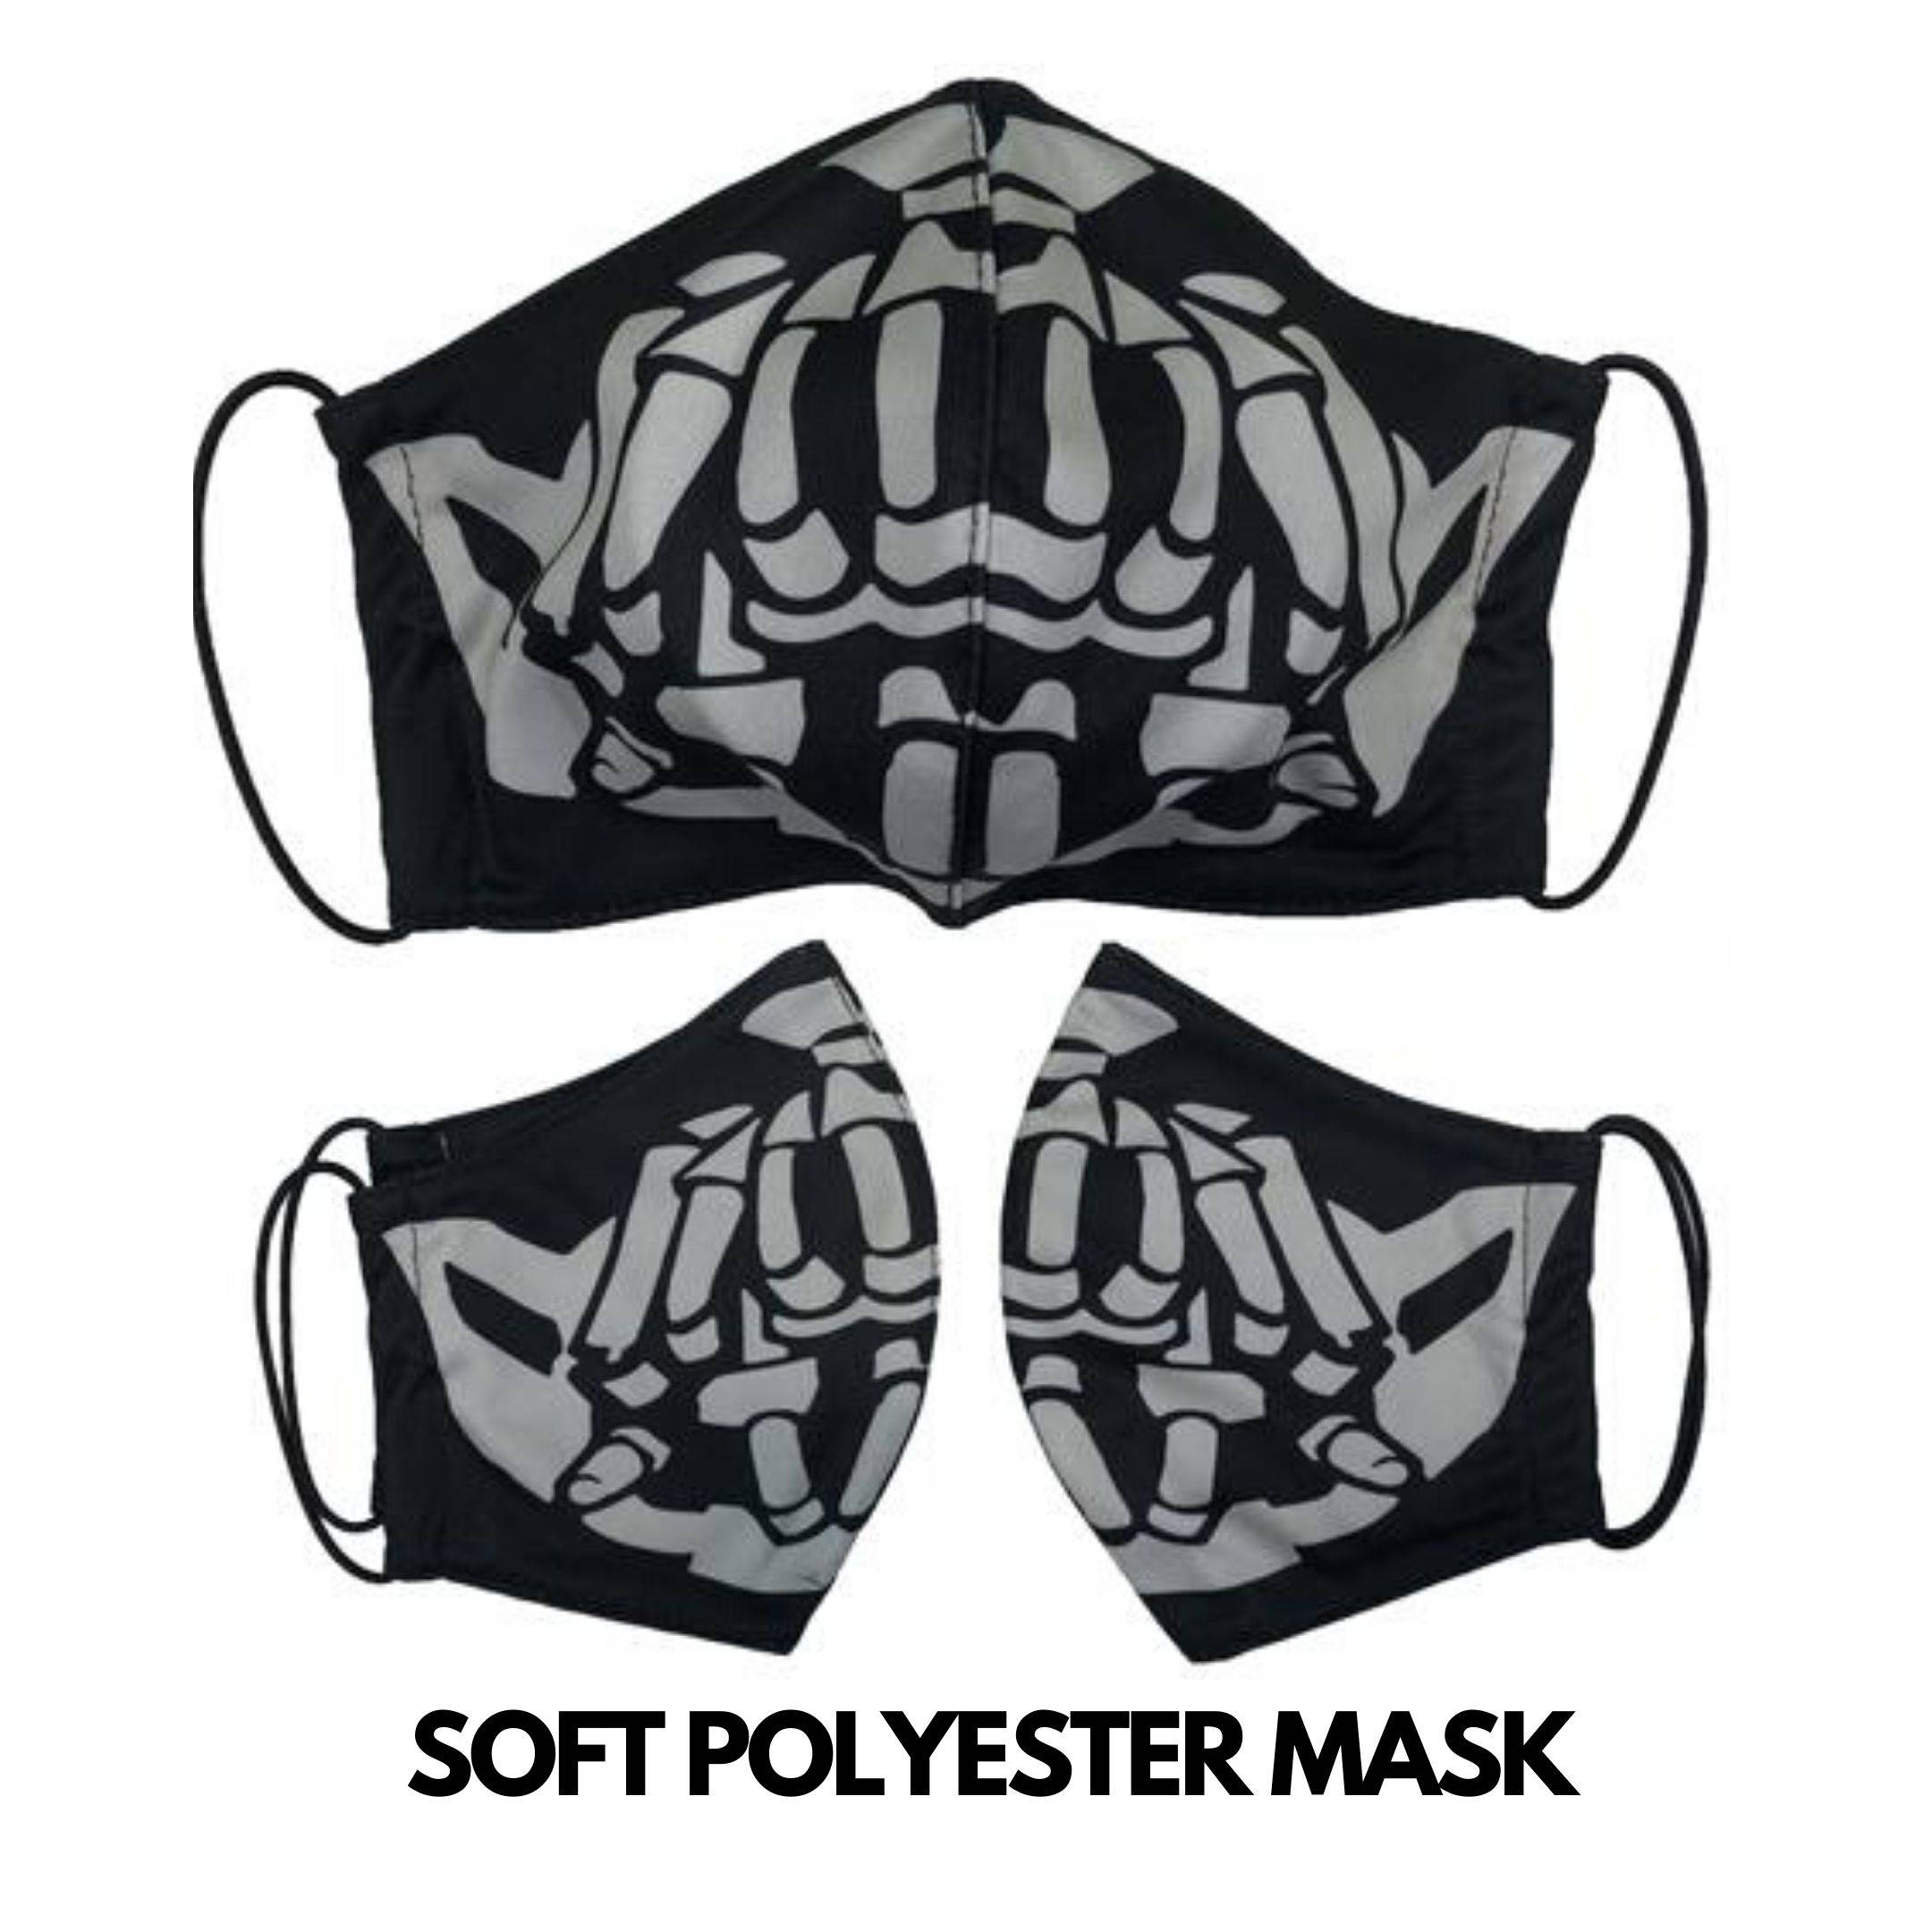 soft polyester mask